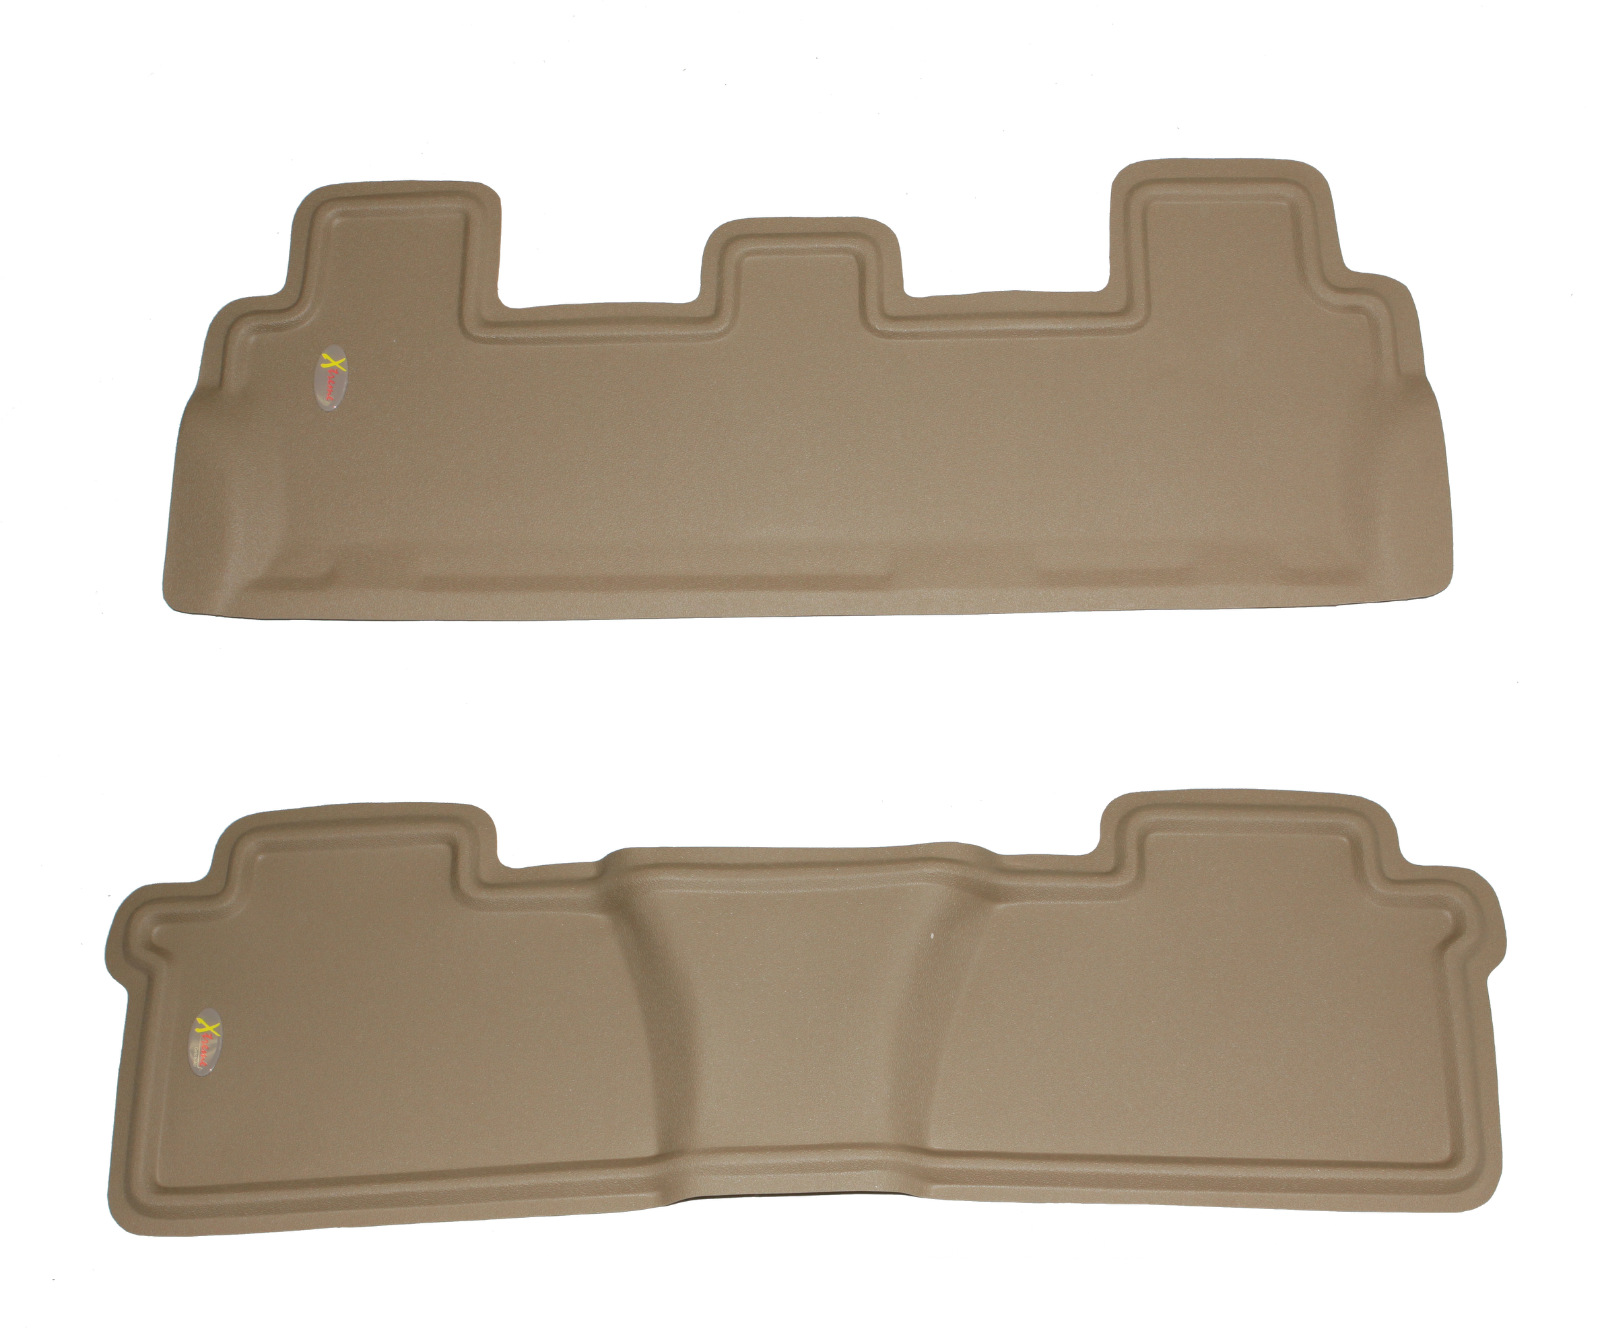 Passenger /& Rear Floor Mats 1997 1998 1999 GGBAILEY Chrysler Town and Country 1996 2000 Black Loop Driver